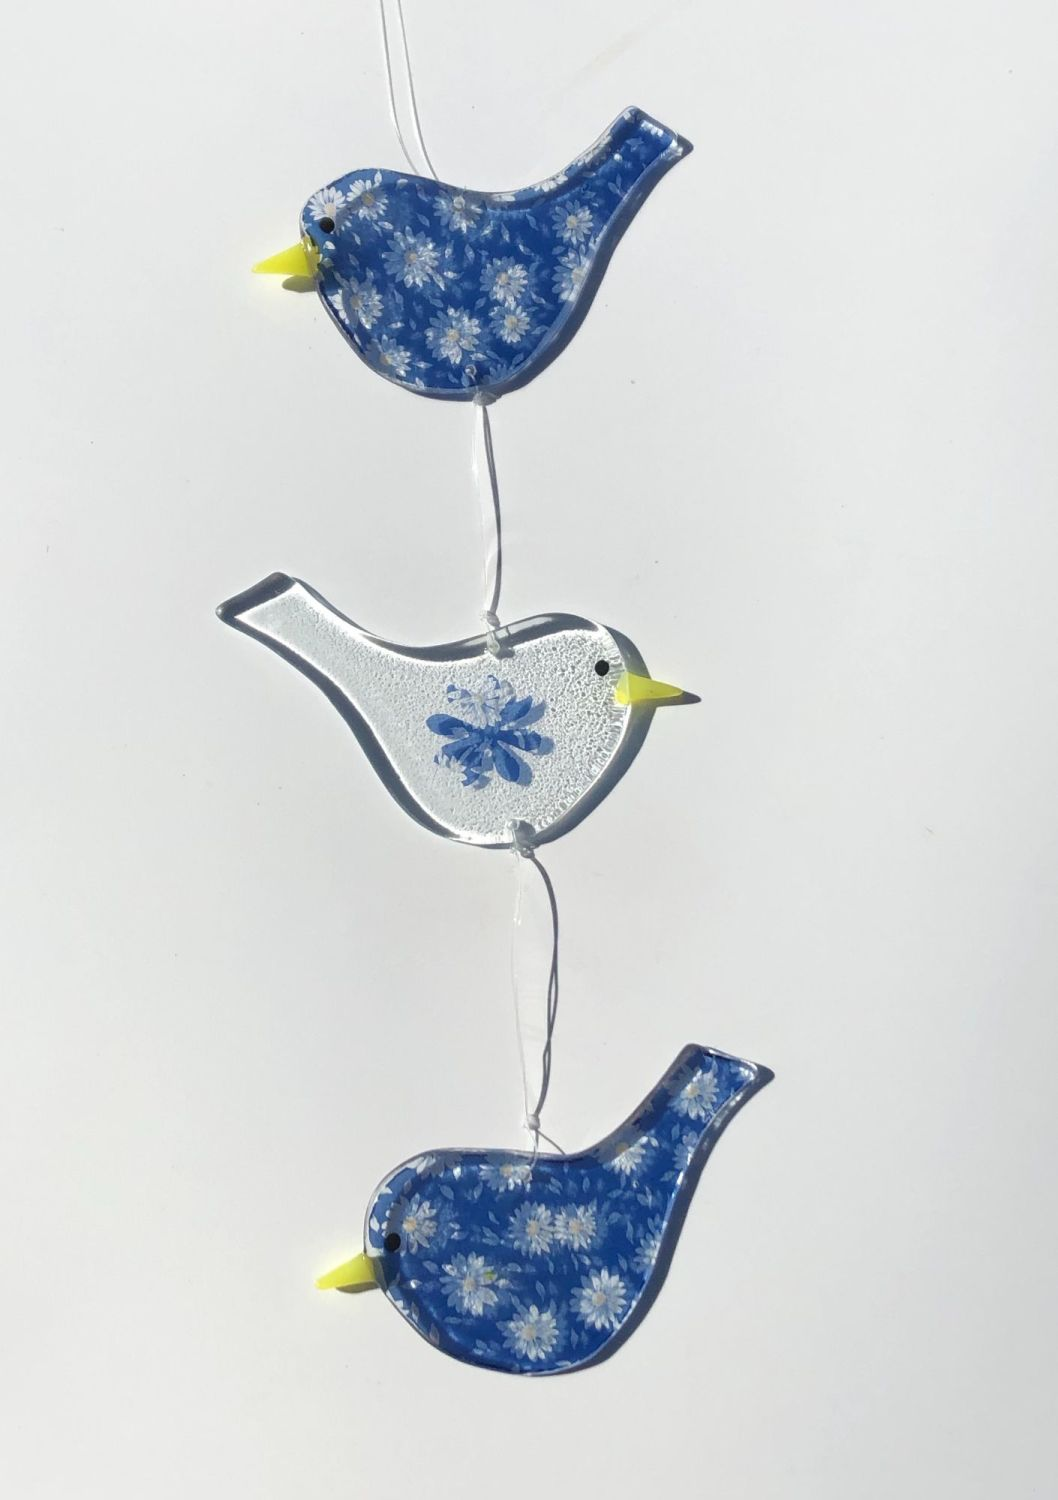 Trio of hanging Birds with blue and white daisy pattern